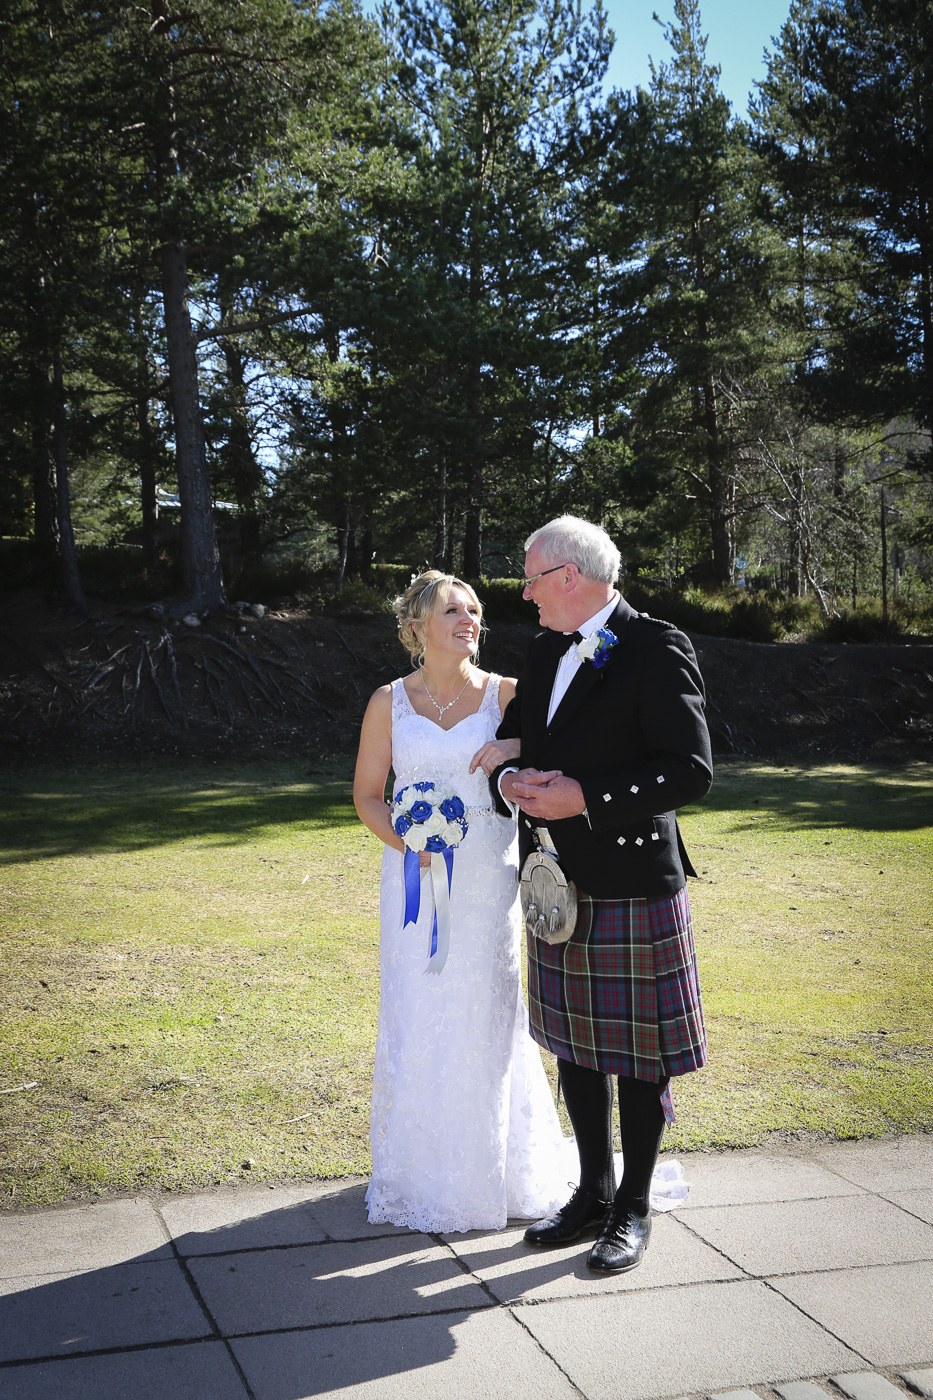 Wedding photography at The Hilton Coylumbridge and Loch Morlich-9845